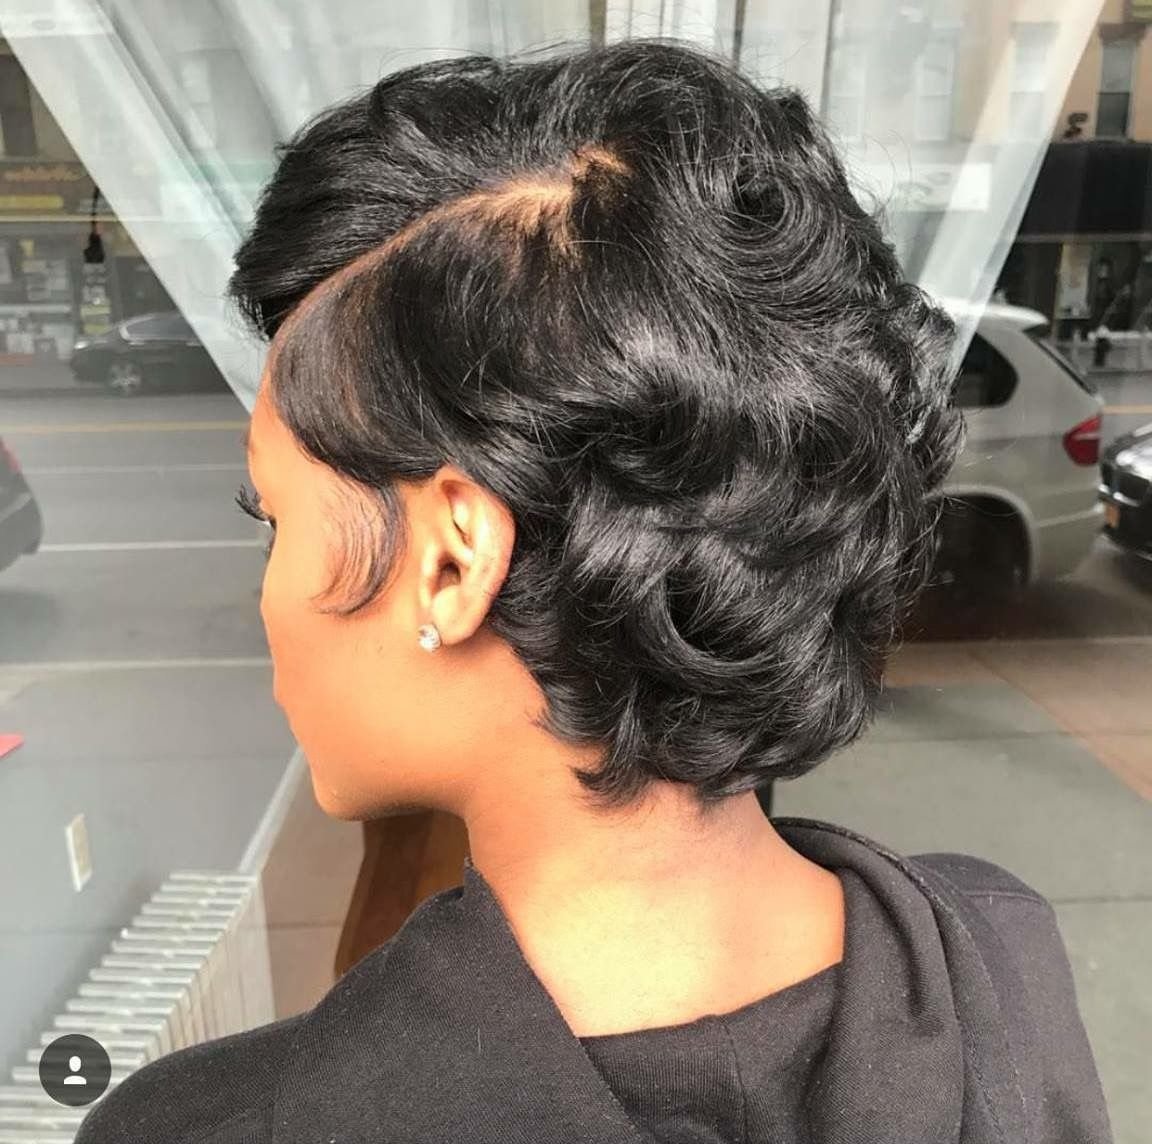 Pin by raven brown on hair pinterest hair style short hair and